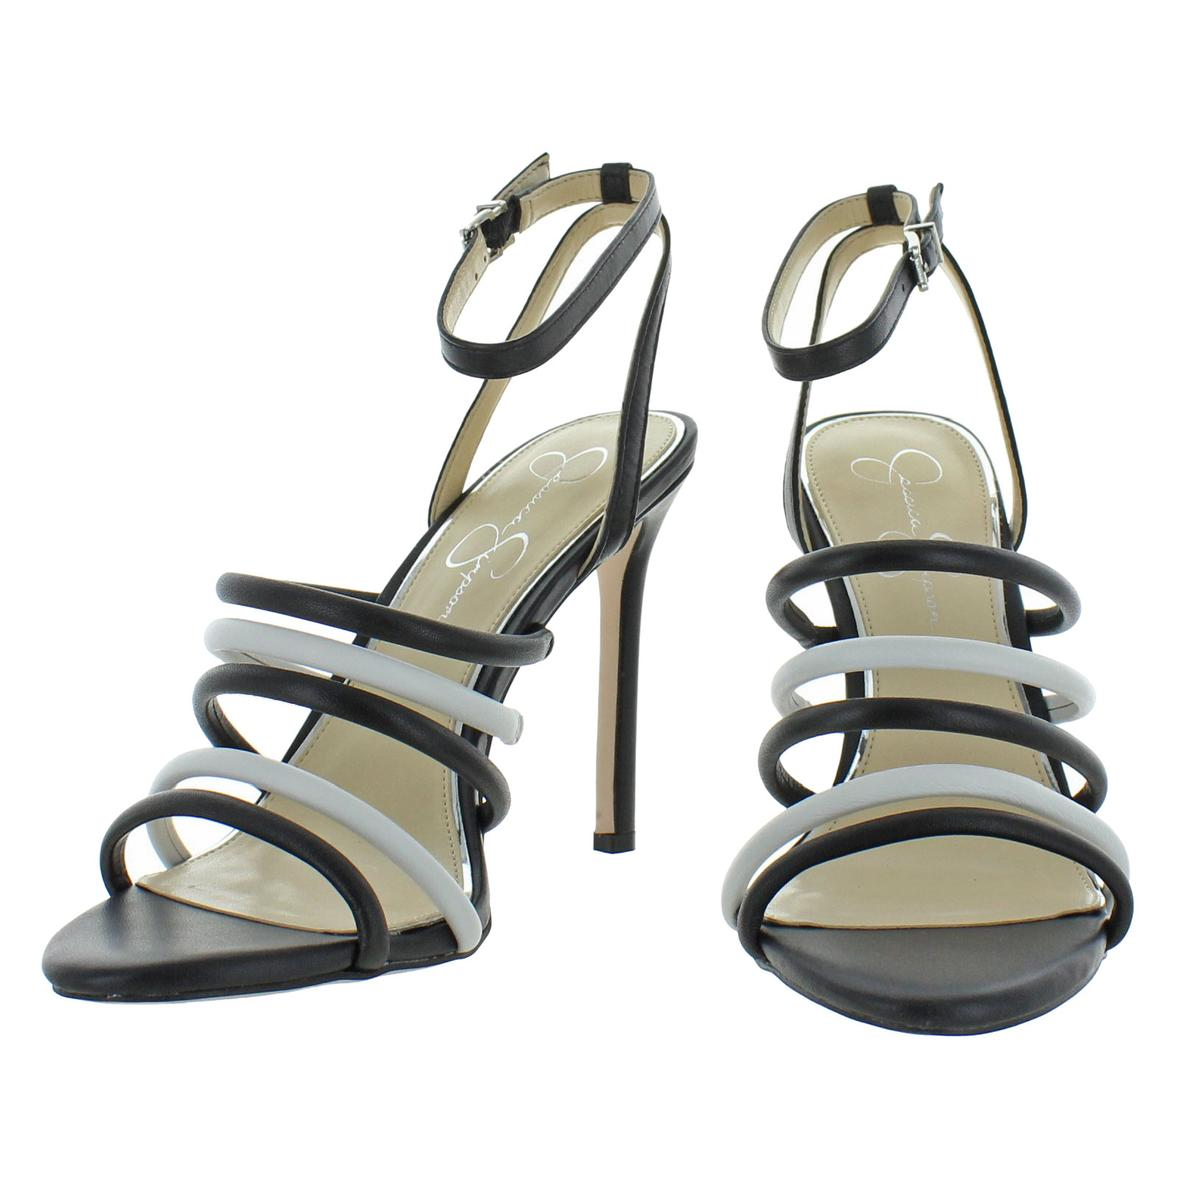 Jessica Simpson Womens Joselle Strappy High Heel Dress Sandals Shoes BHFO 7879